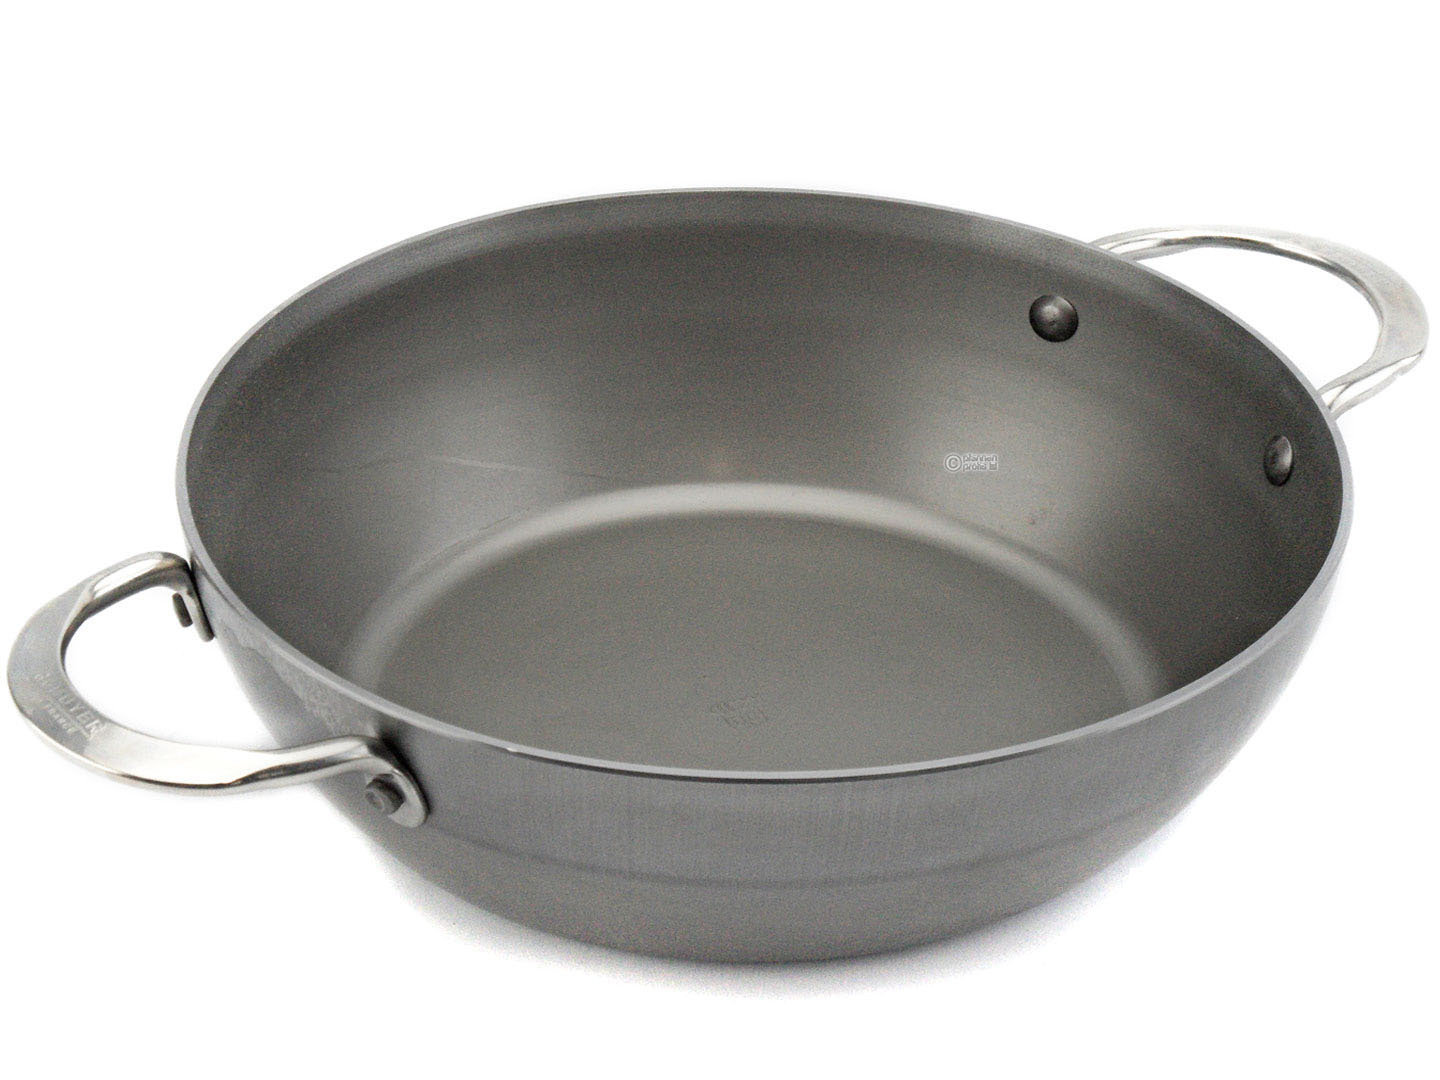 DE BUYER iron country pan MINERAL B ELEMENT 32 cm deep skillet with 2 handles